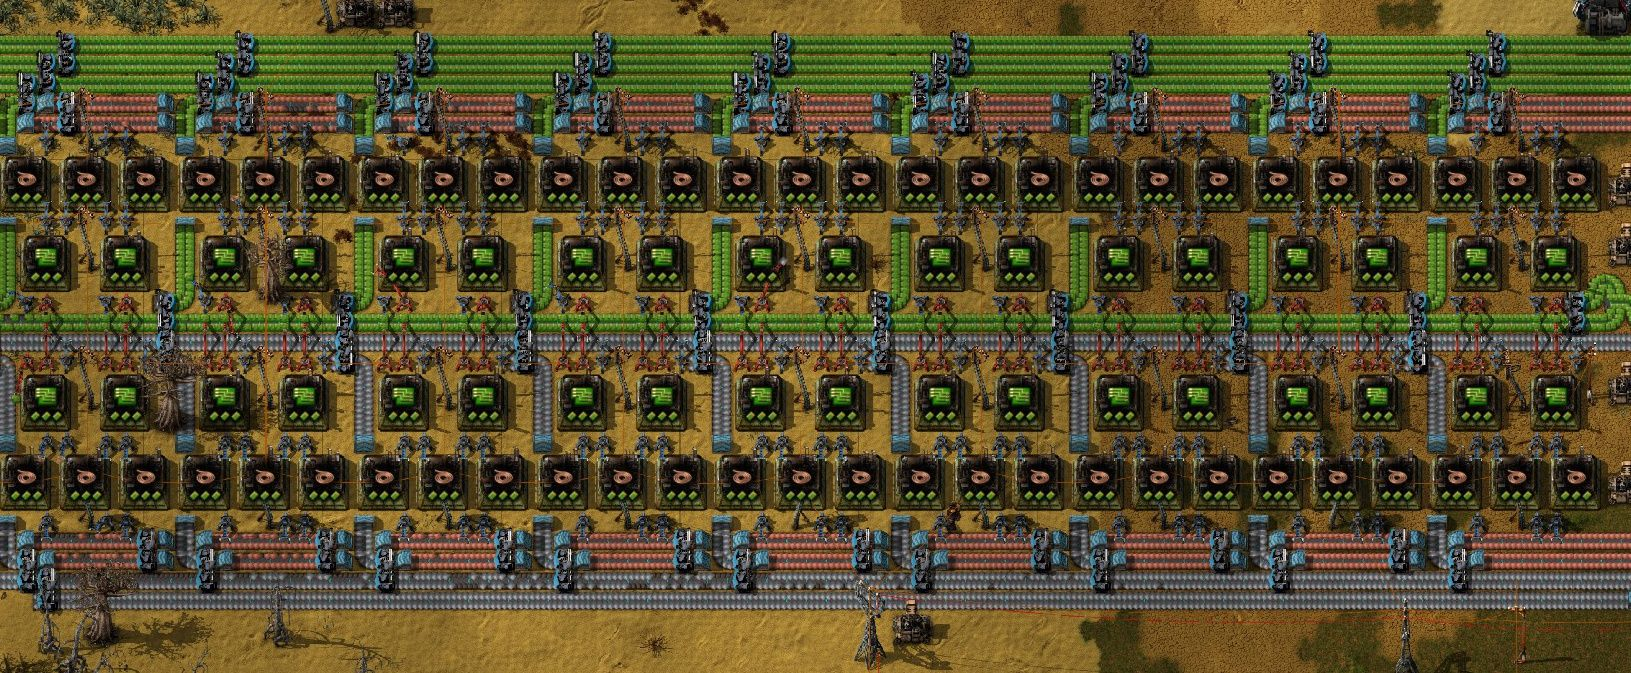 Steam Community :: Guide :: Factorio: Observations, Tips